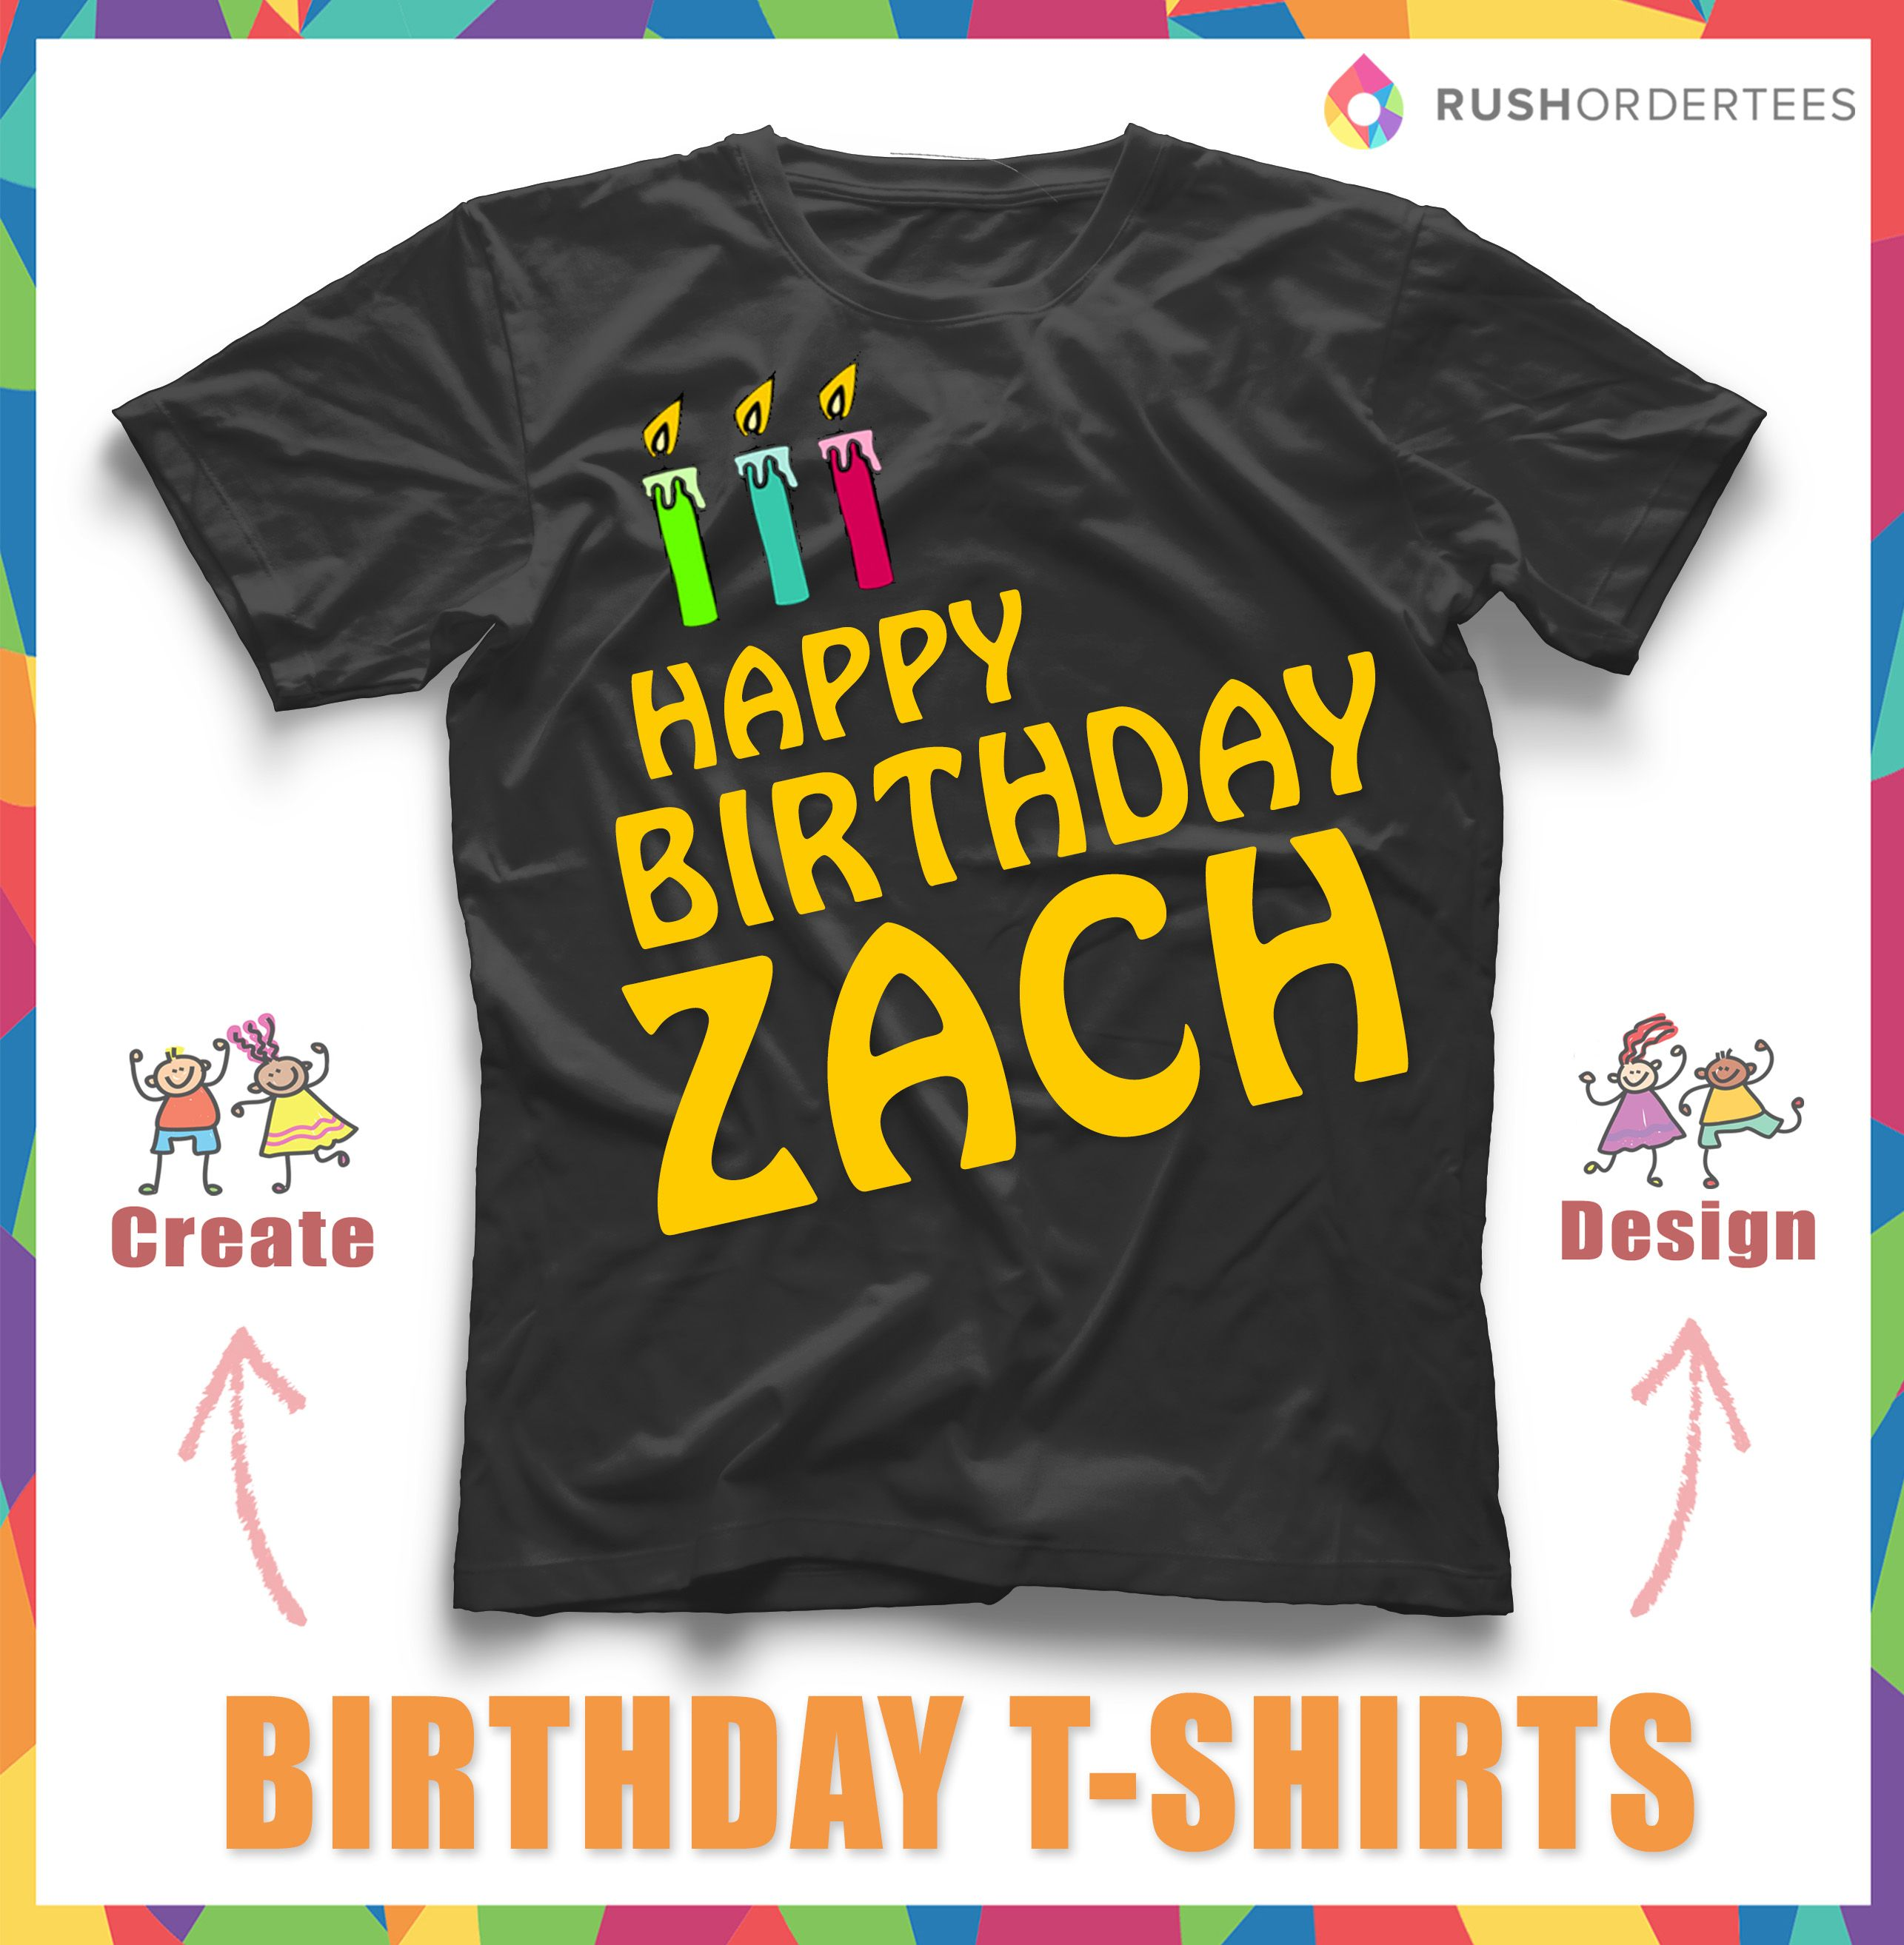 76f02be90 #create #custom #tshirts for your friends next #birthdayParty #funIdea for  Birthdays